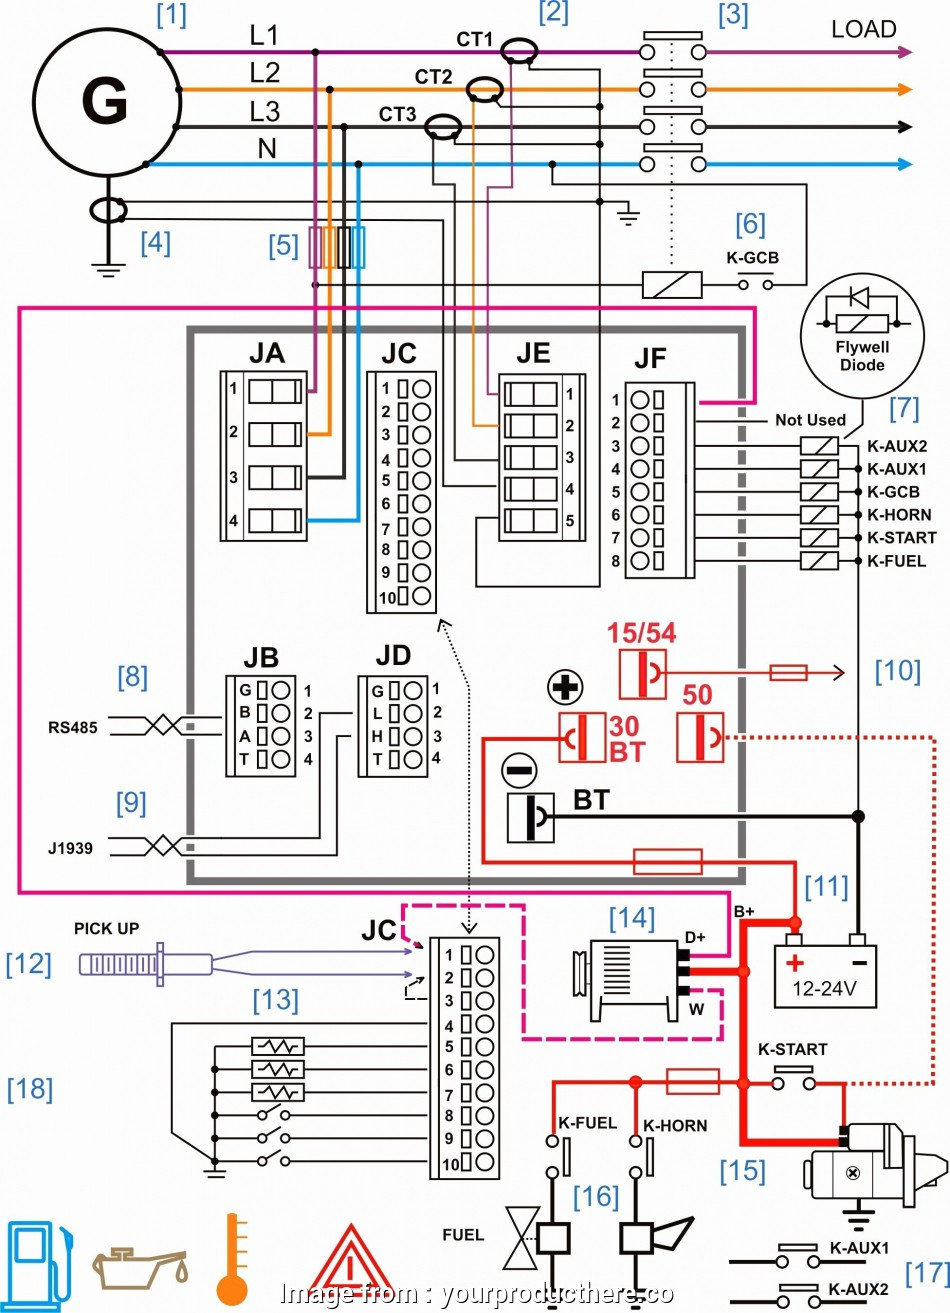 how to wire a 3 way switch automotive House Wiring Diagram 3, Switch, Wiring Diagram, An Electrical Switch Refrence Automotive Wiring 10 Nice How To Wire, Way Switch Automotive Collections